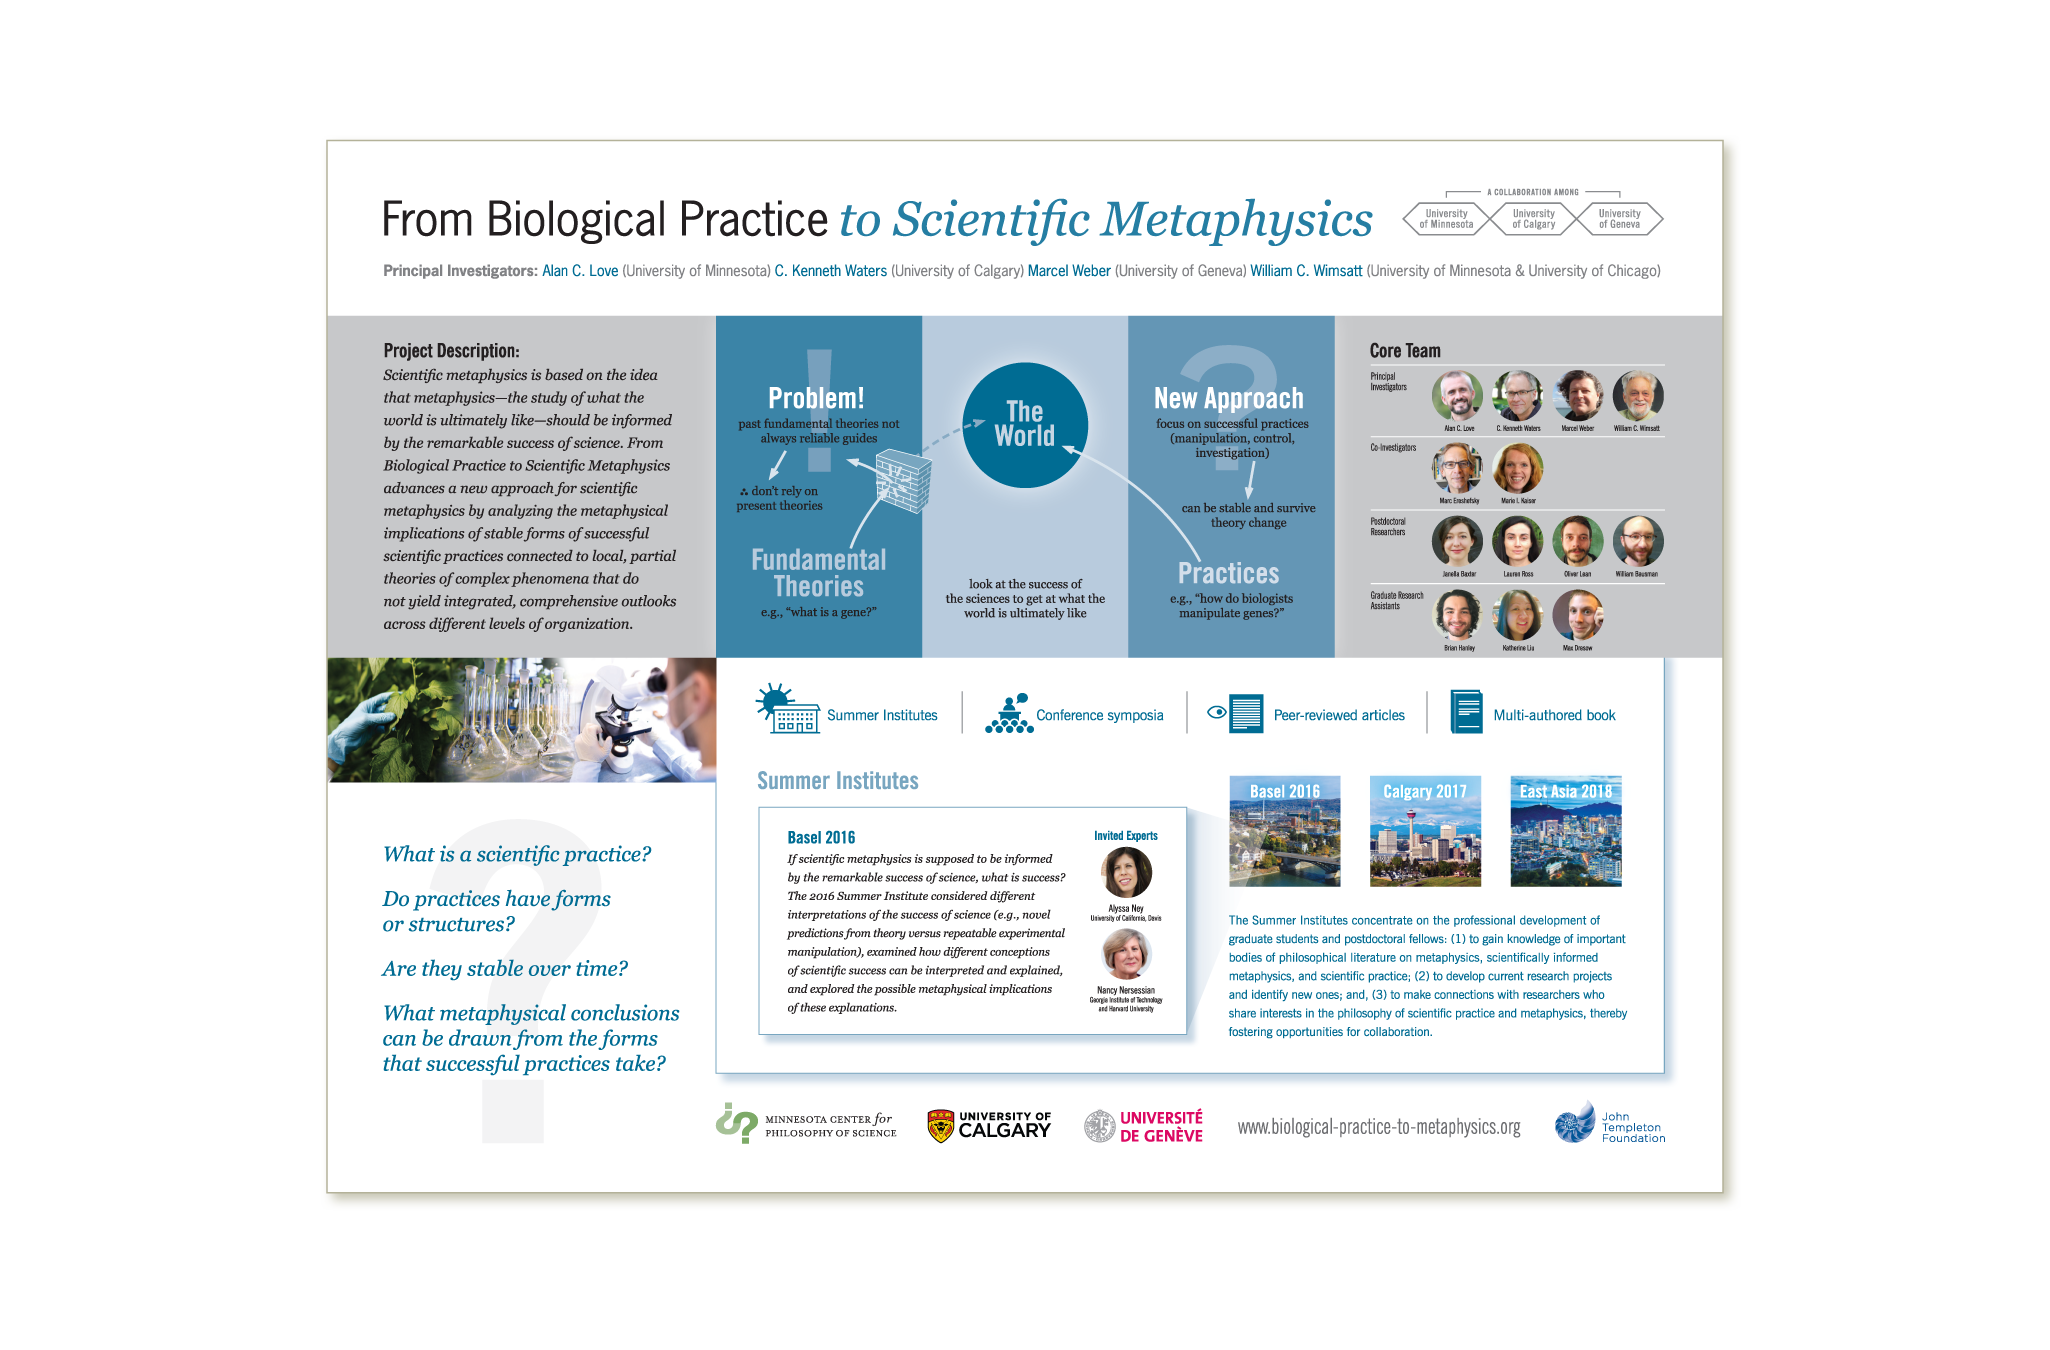 Conference poster of Biological Practice to Scientific Metaphysics project